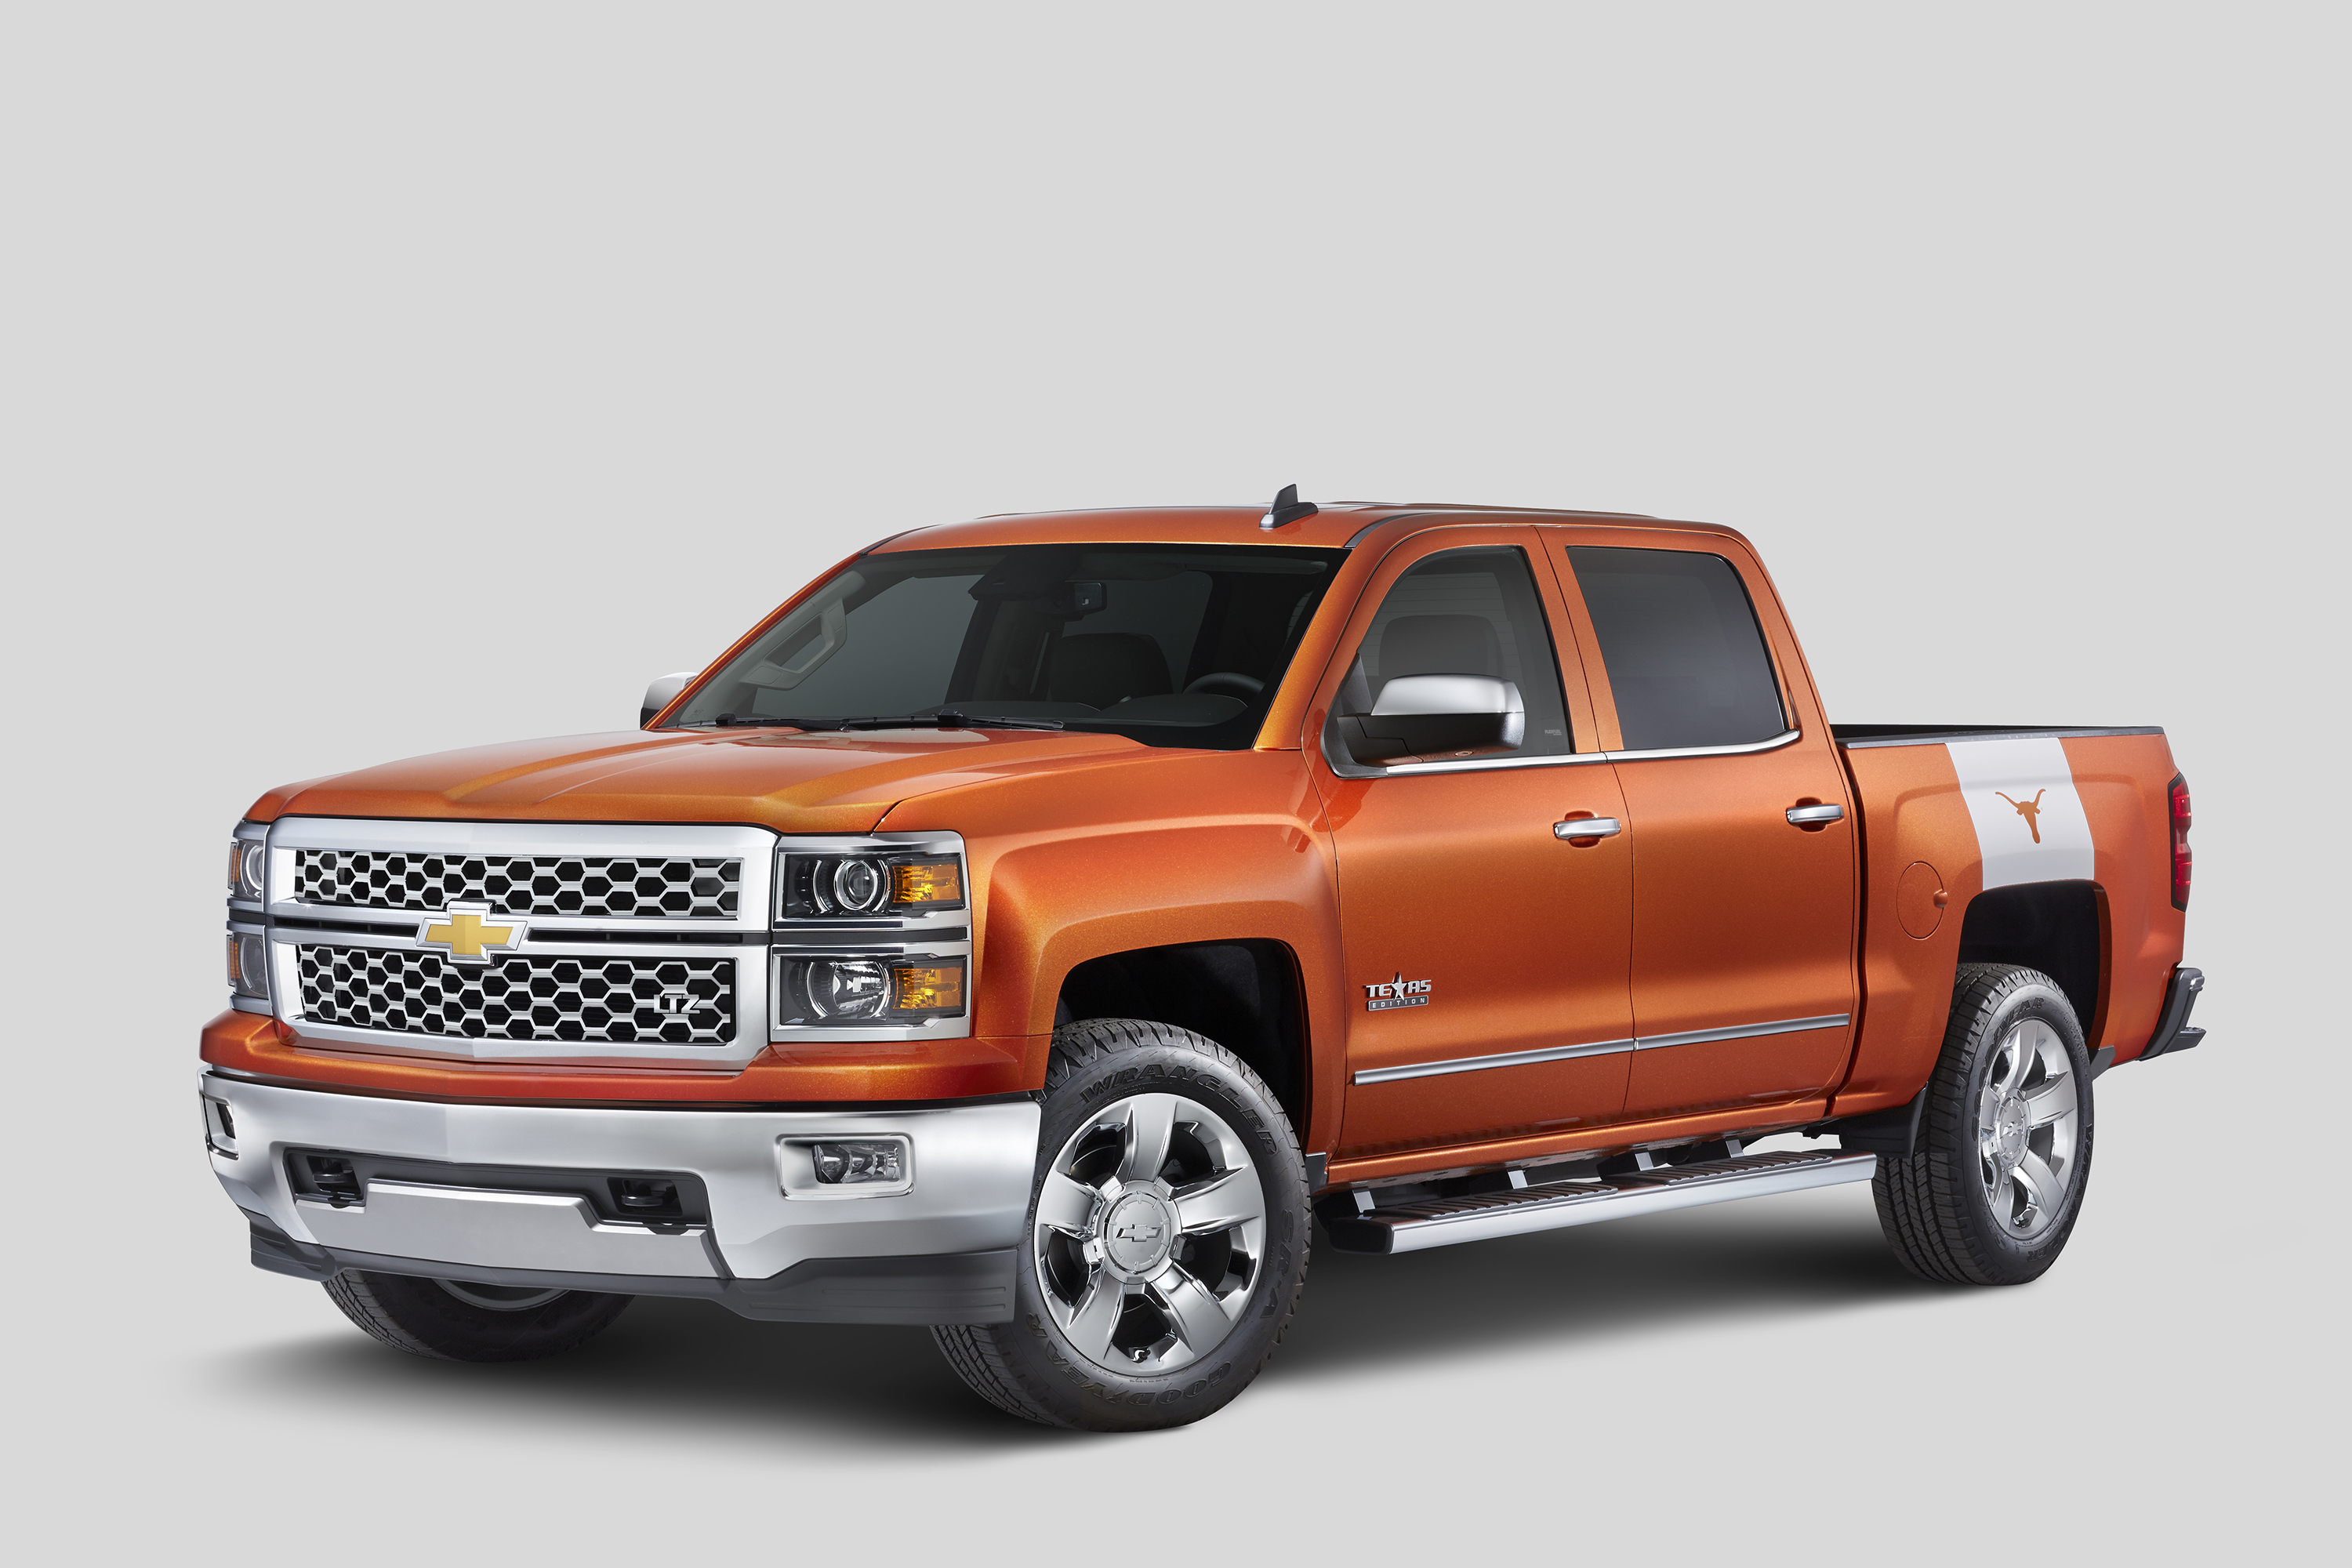 Chevrolet Gets Ready for Texas Football with Special